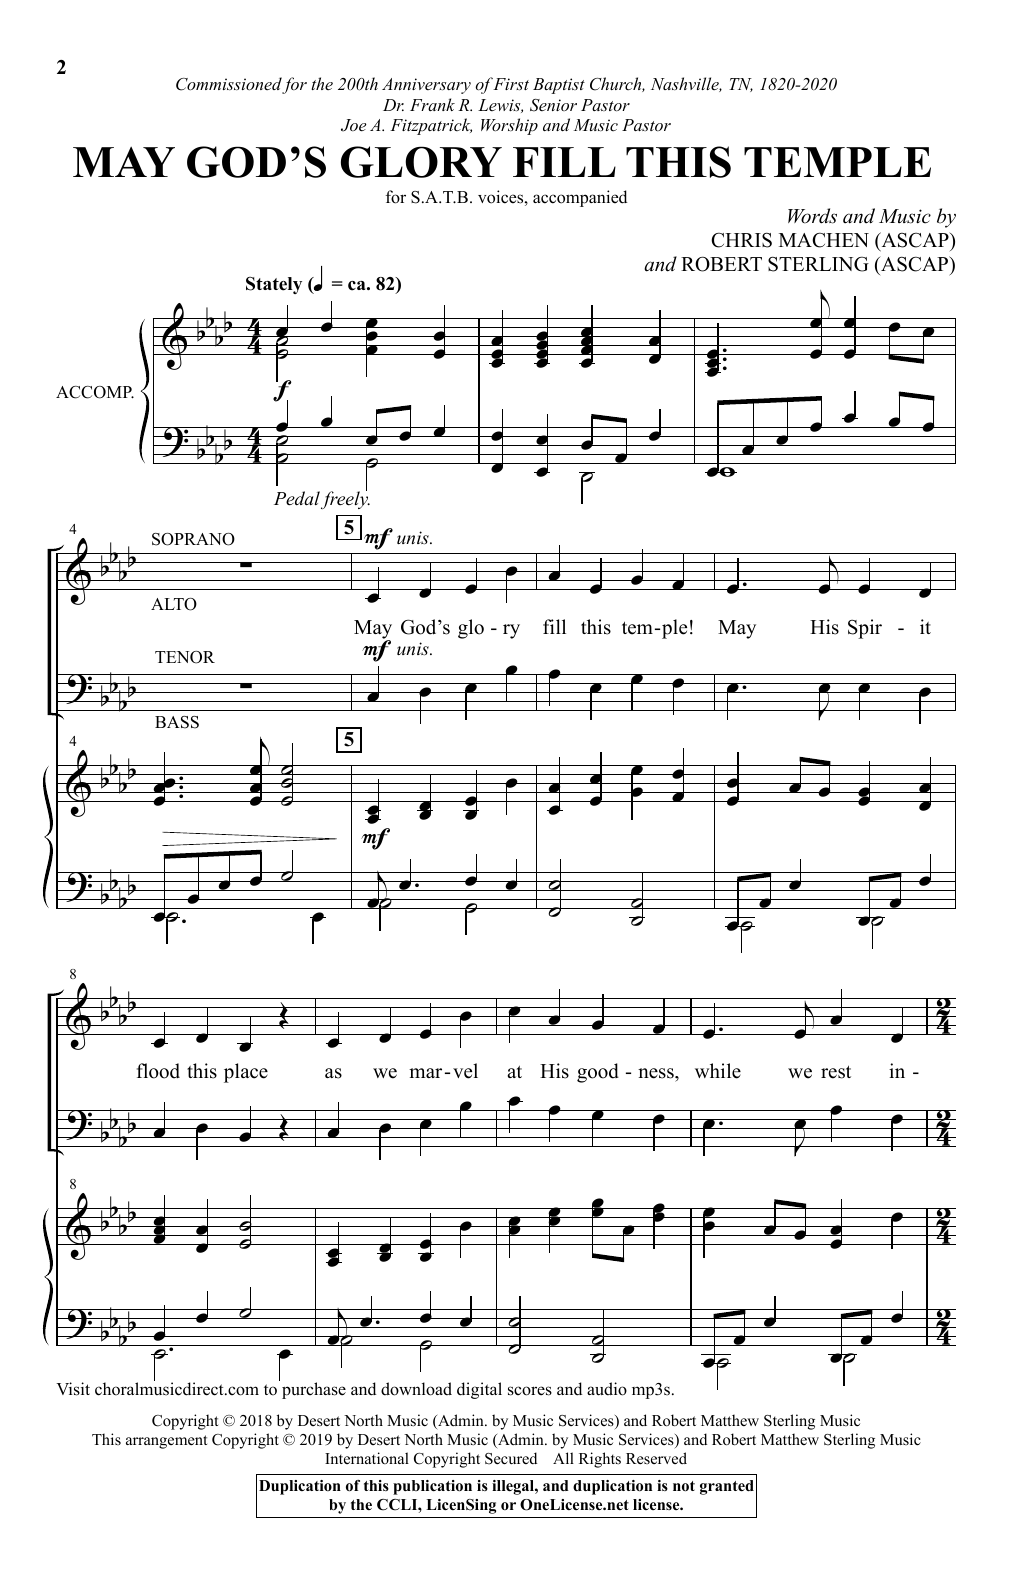 May God's Glory Fill This Temple (SATB Choir)